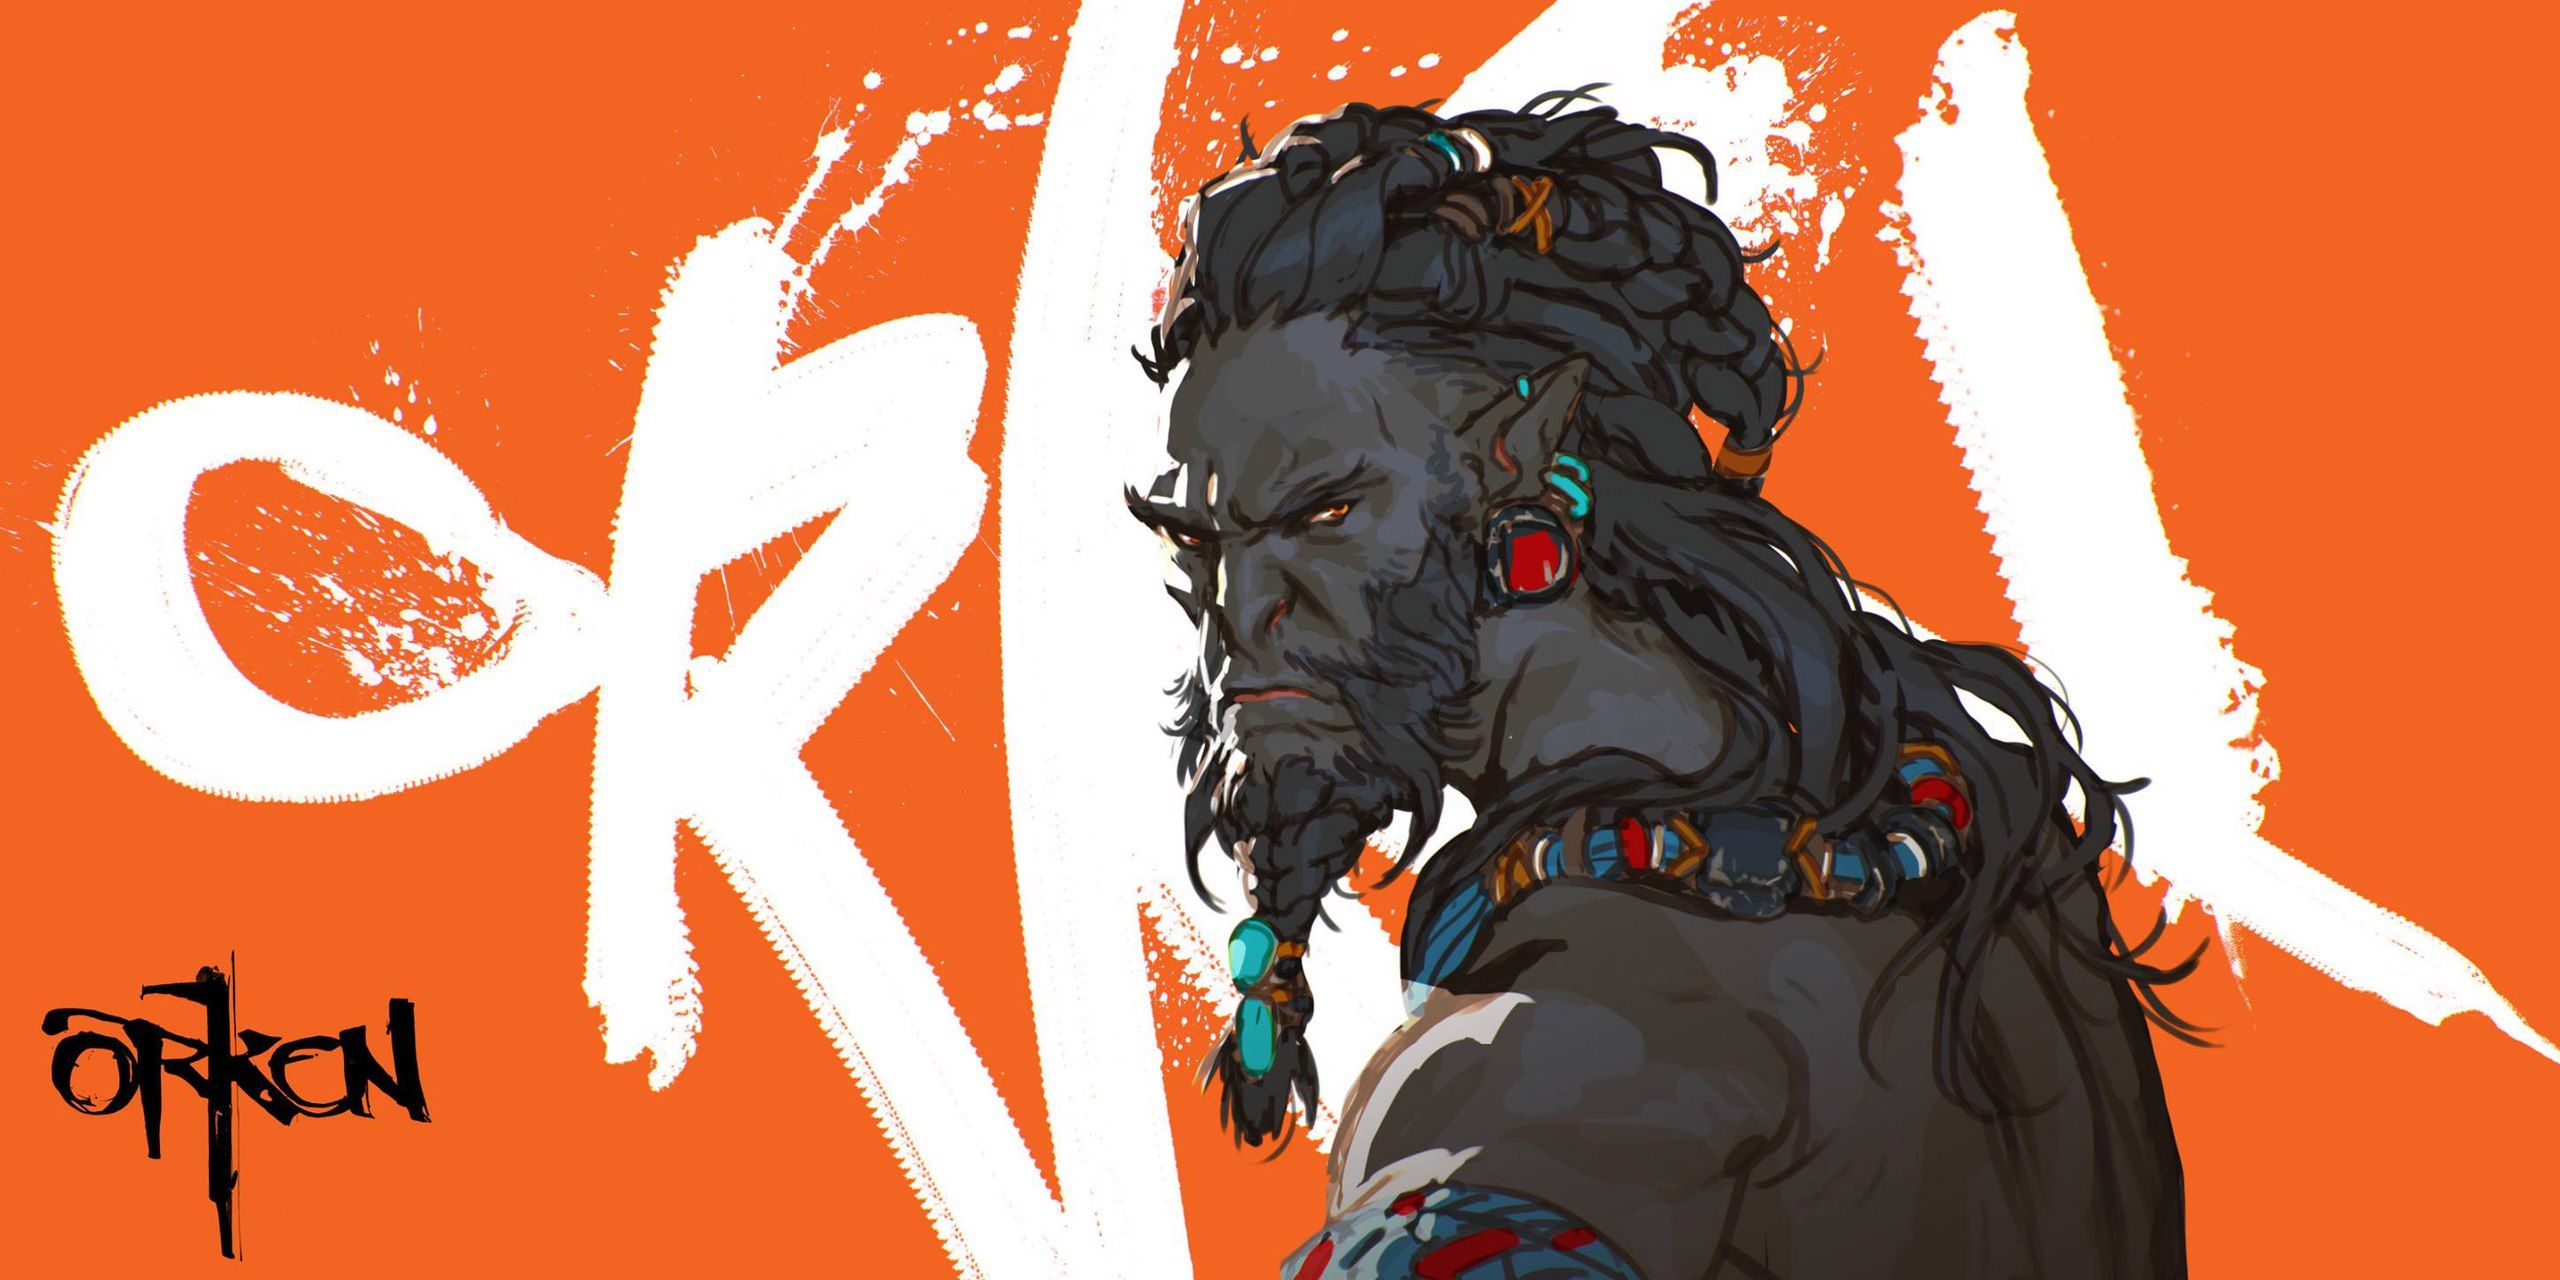 ORKEN concept art – 121 photos | VK | ORKEN what? in 2019